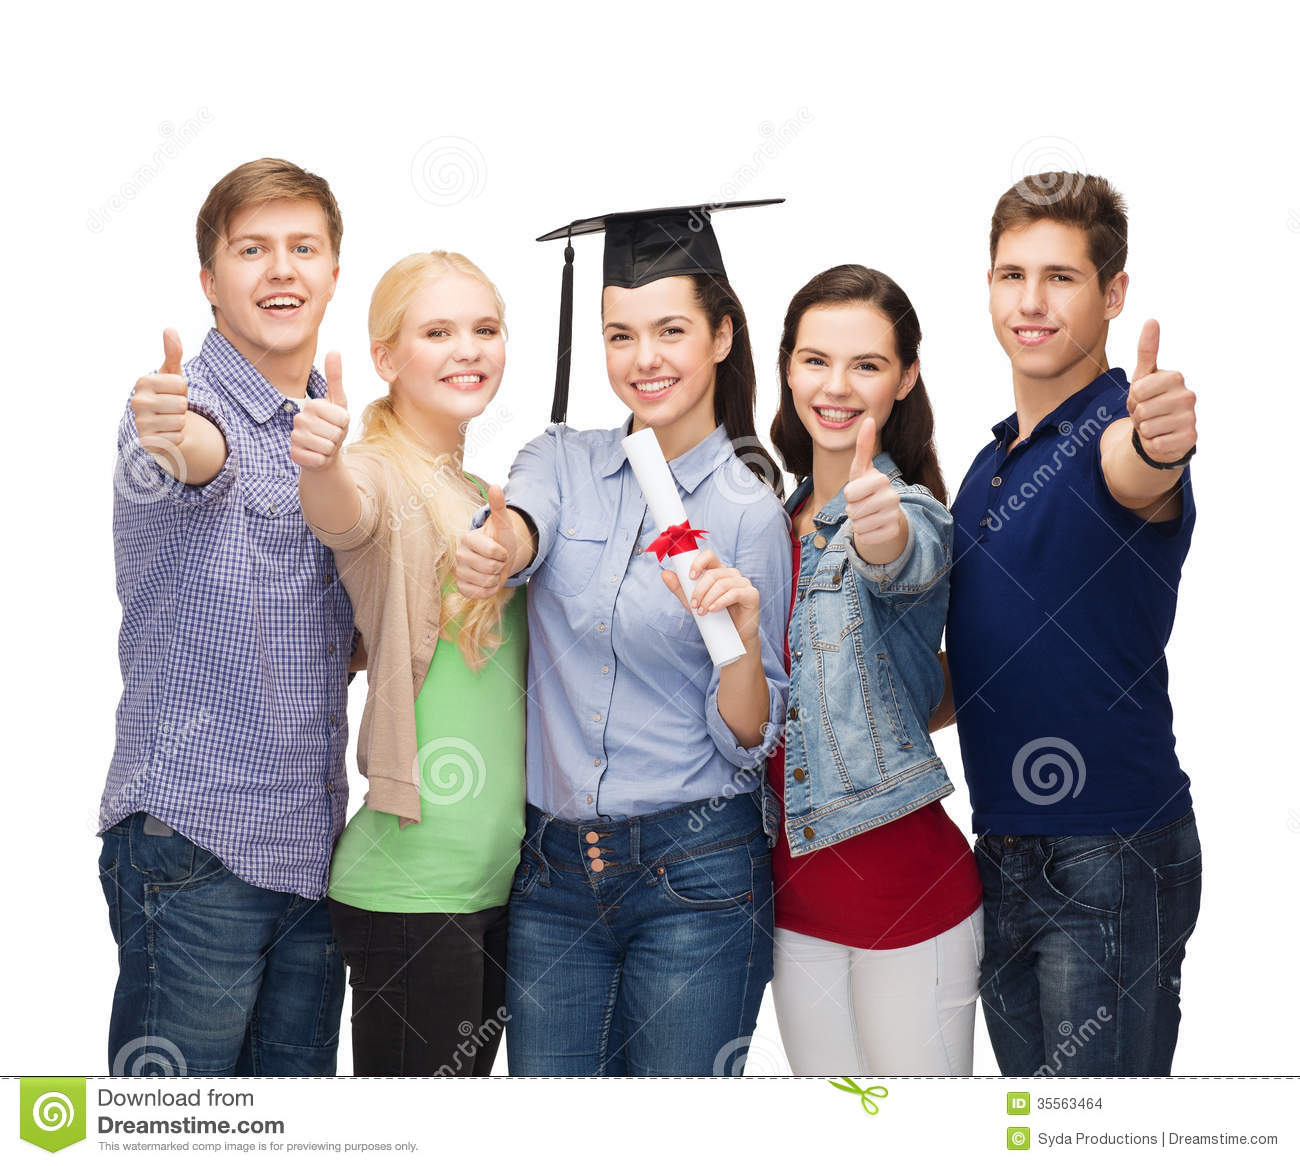 group of students diploma showing thumbs up stock photo  group of students diploma showing thumbs up